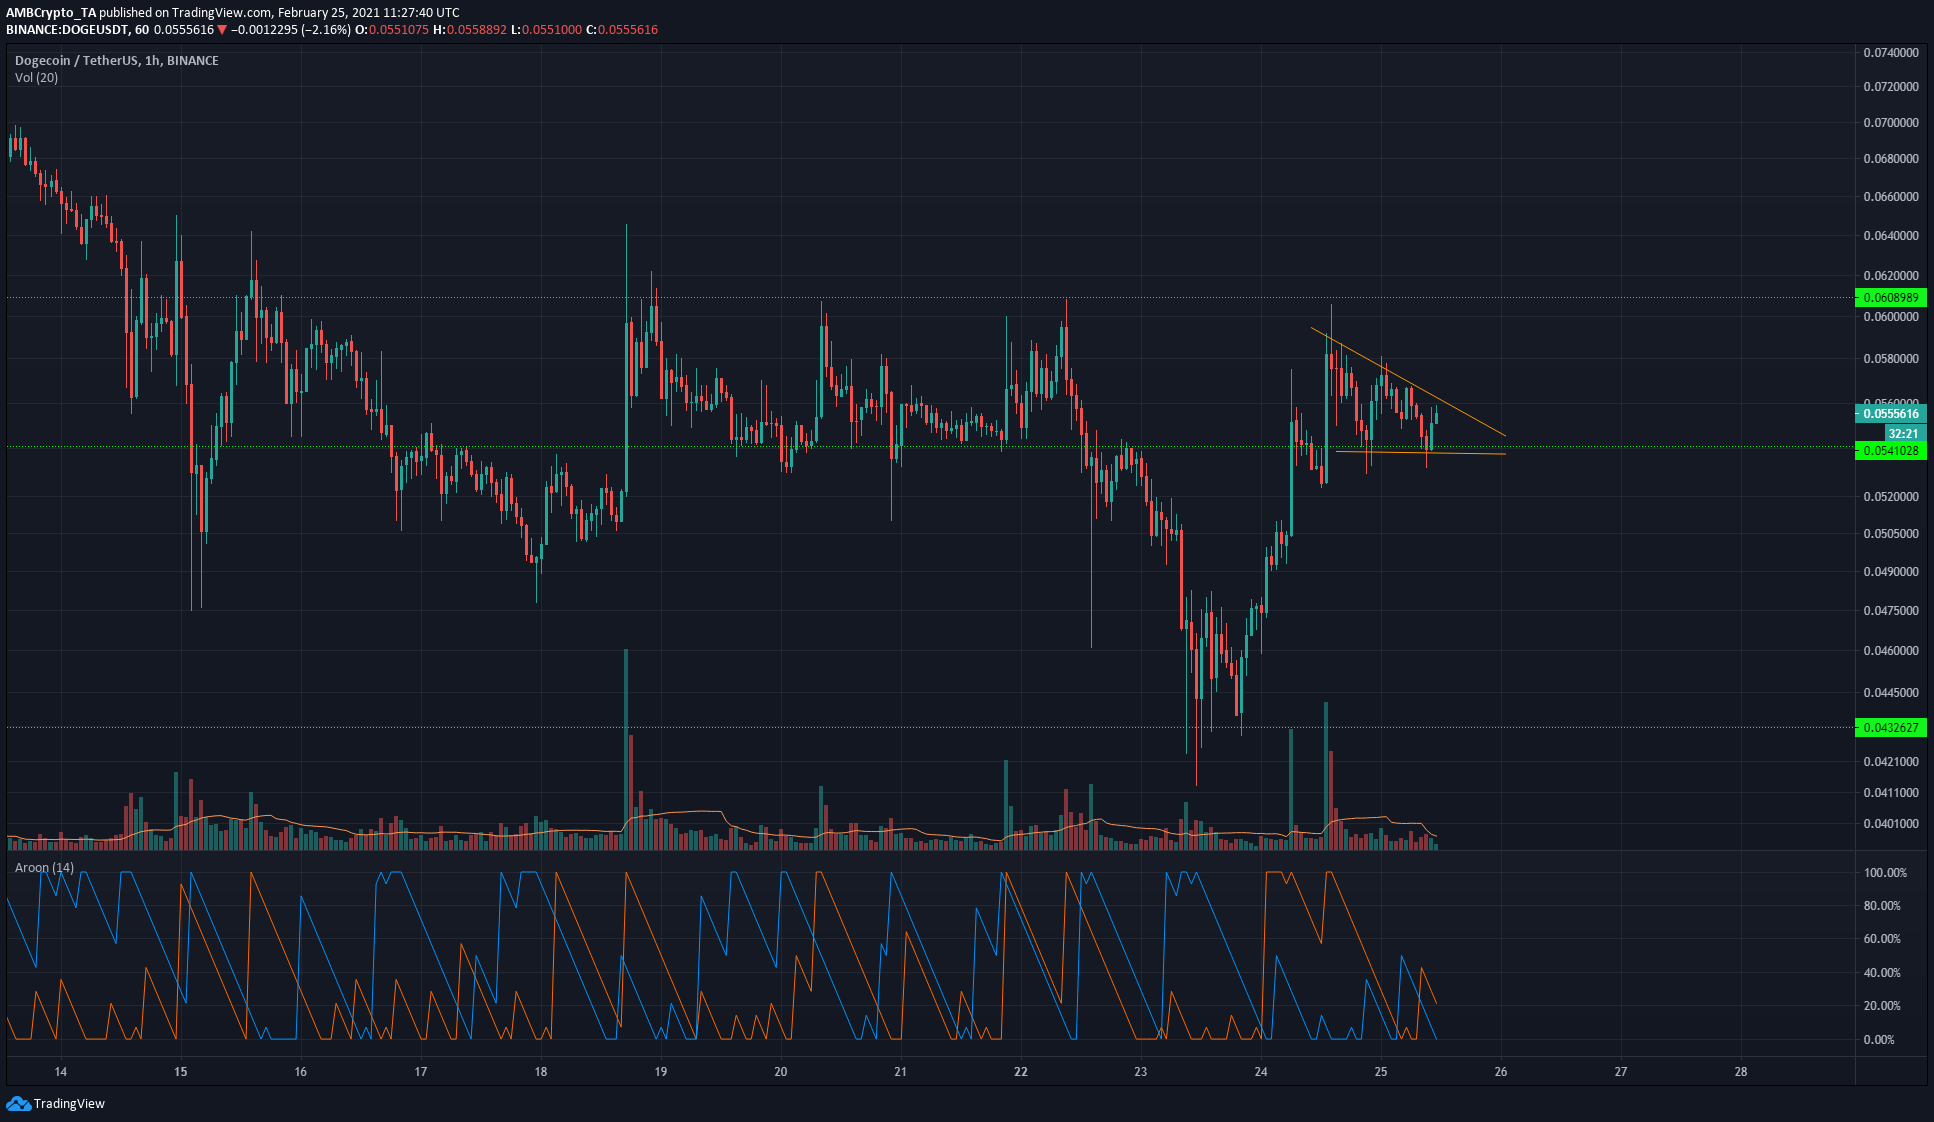 Bitcoin SV, Uniswap, Dogecoin Price Analysis: 25 February